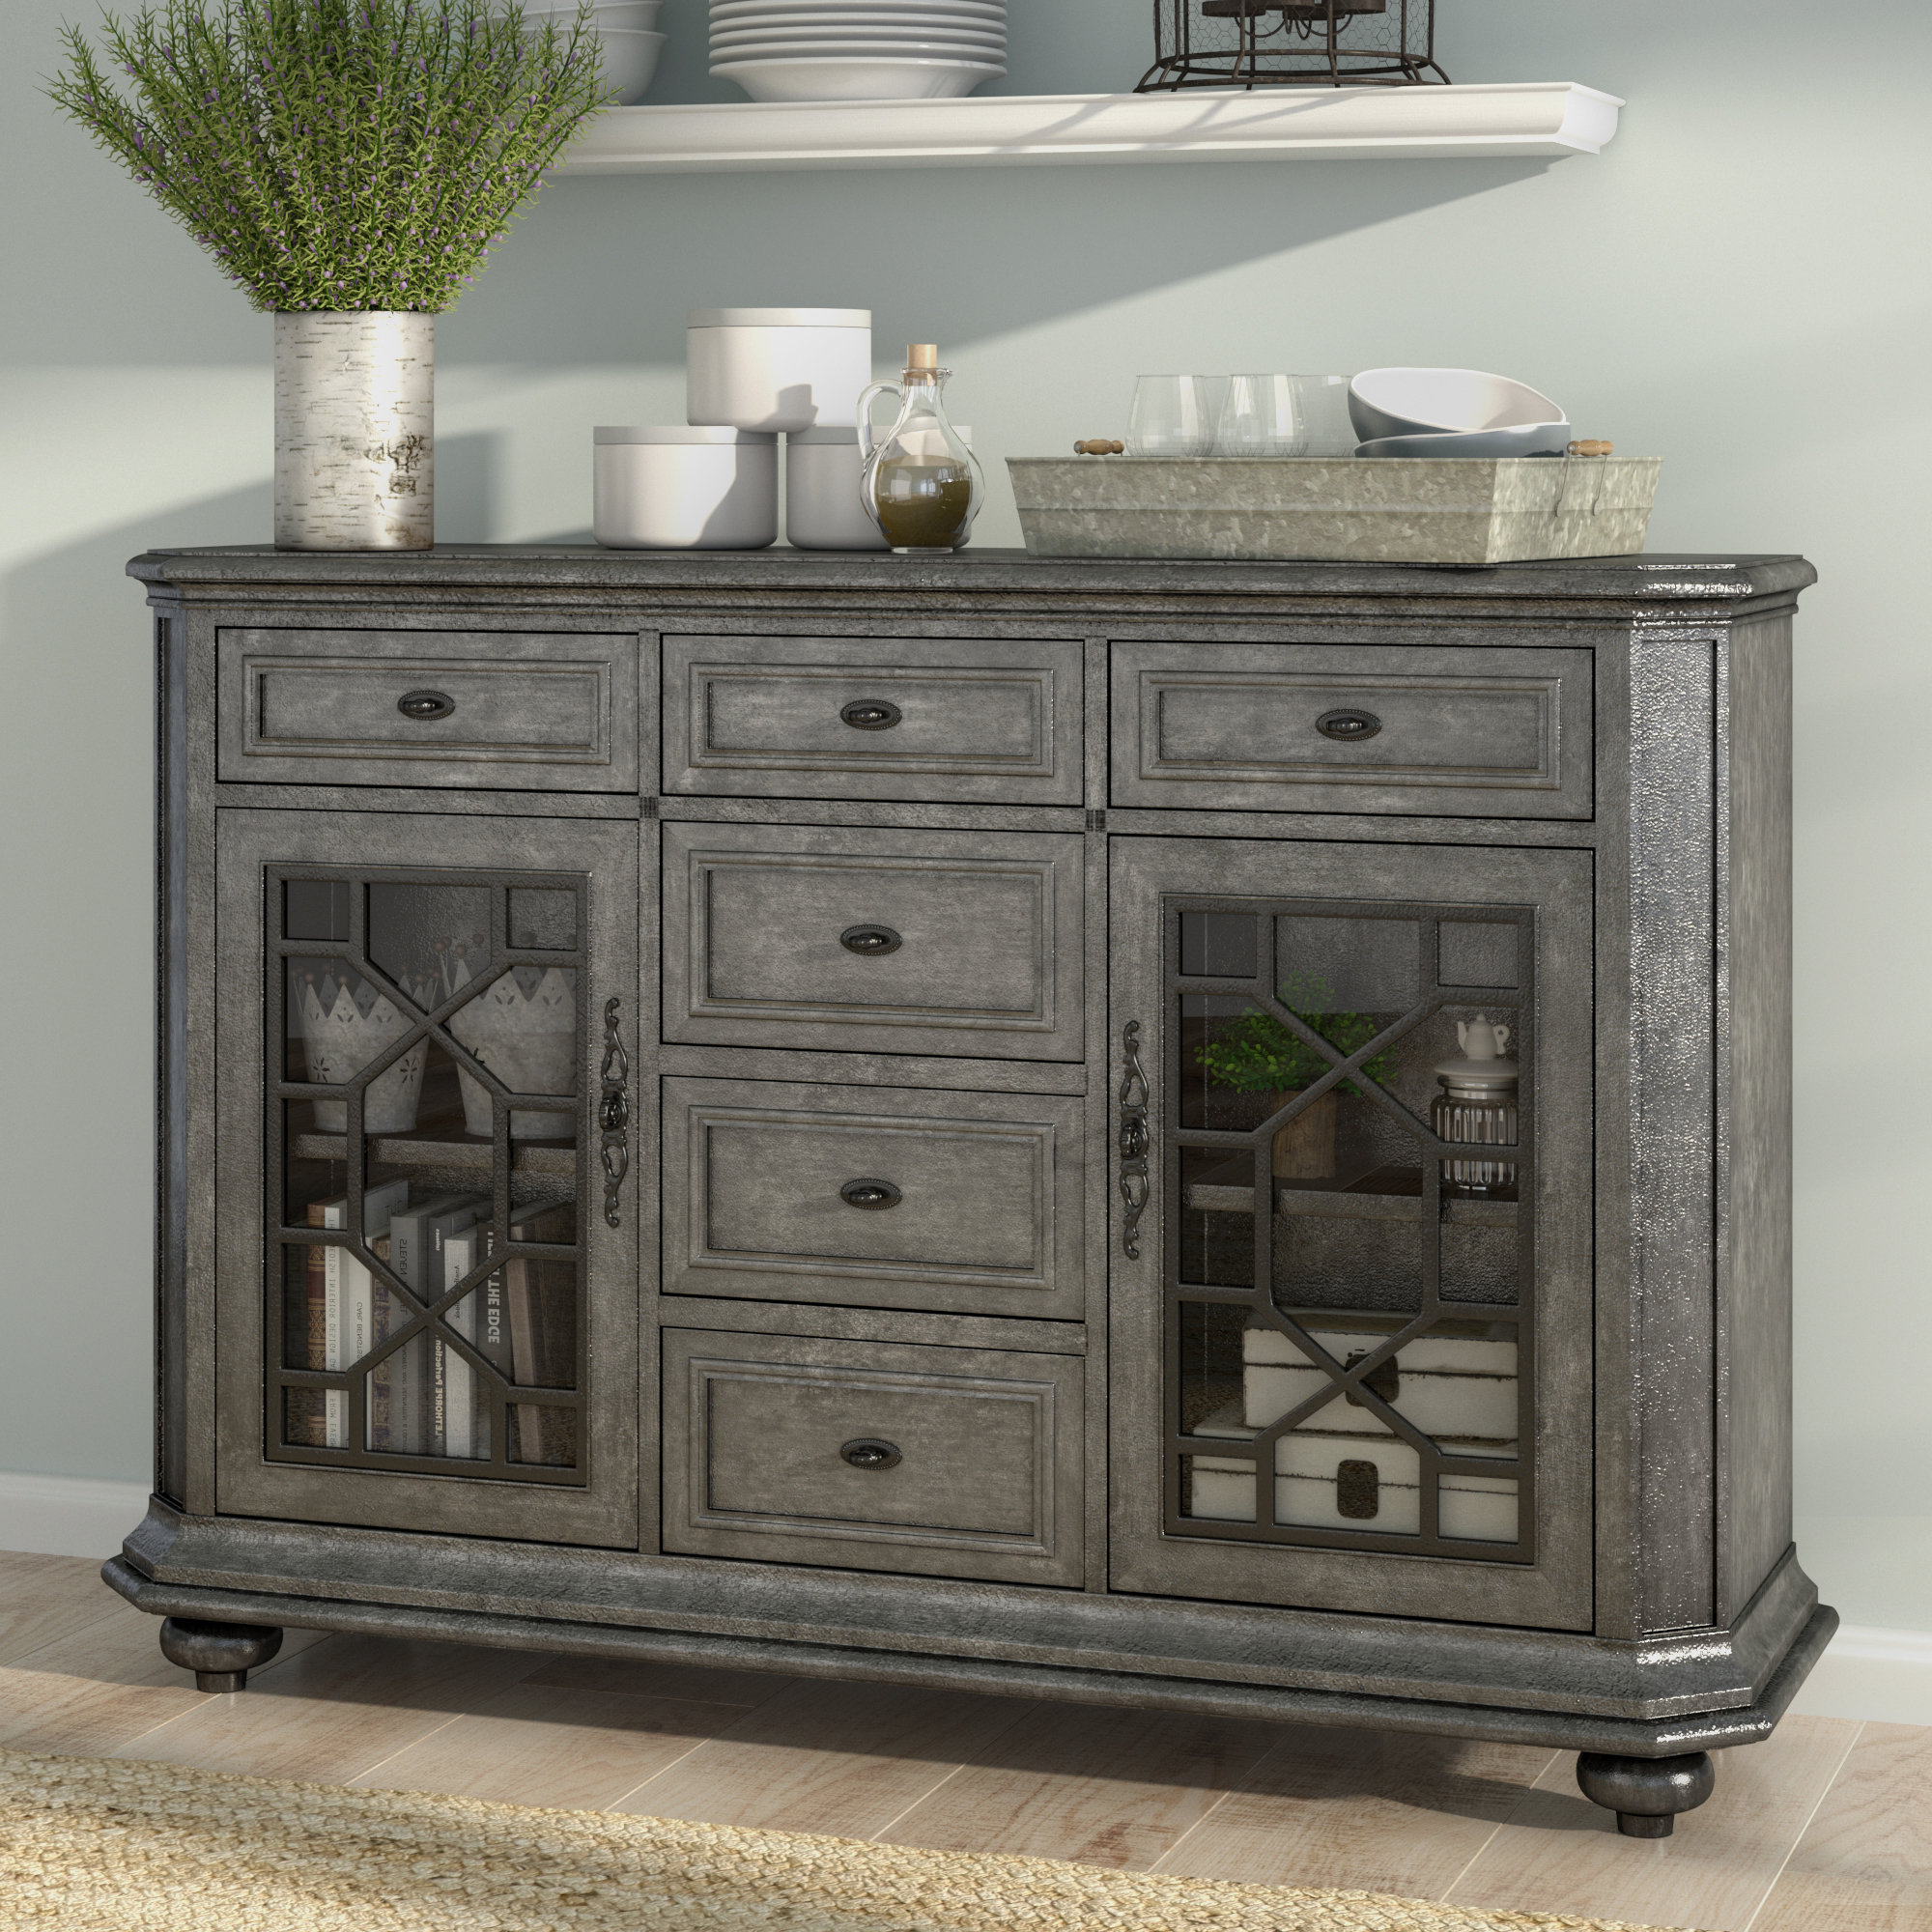 Farmhouse & Rustic Bungalow Rose Sideboards & Buffets Intended For Dillen Sideboards (View 12 of 20)